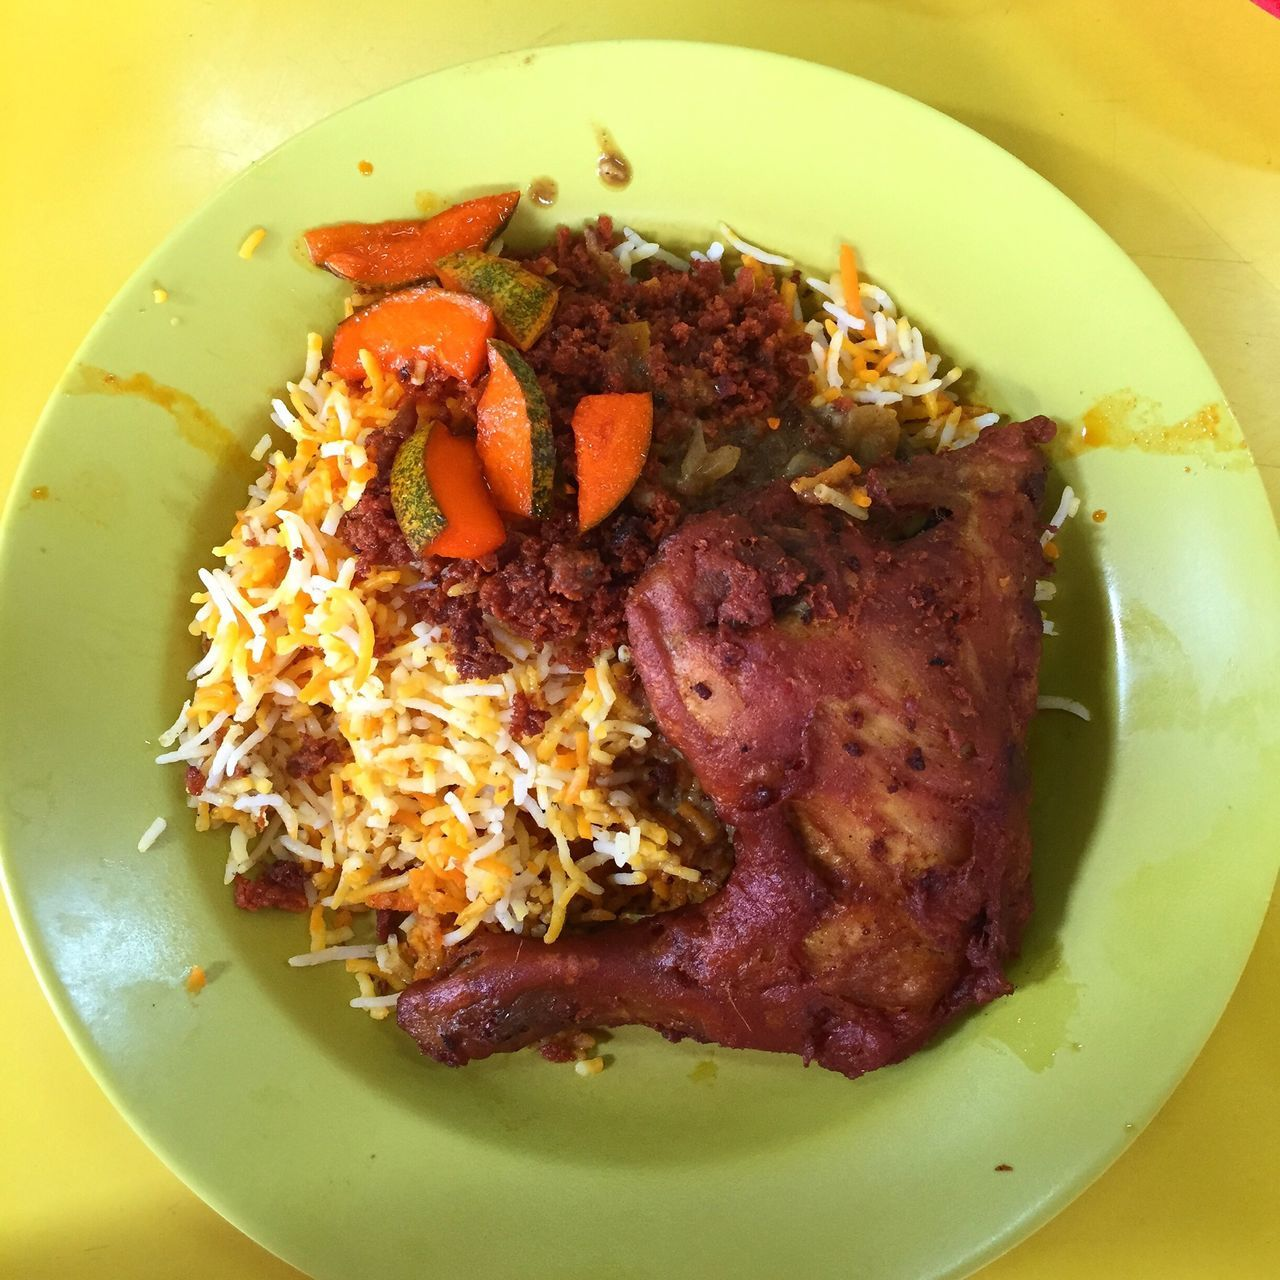 Chicken Briyani Rice Fried Chicken Localfood Foodie Foodiecentral Foodphotography Food Sgeats